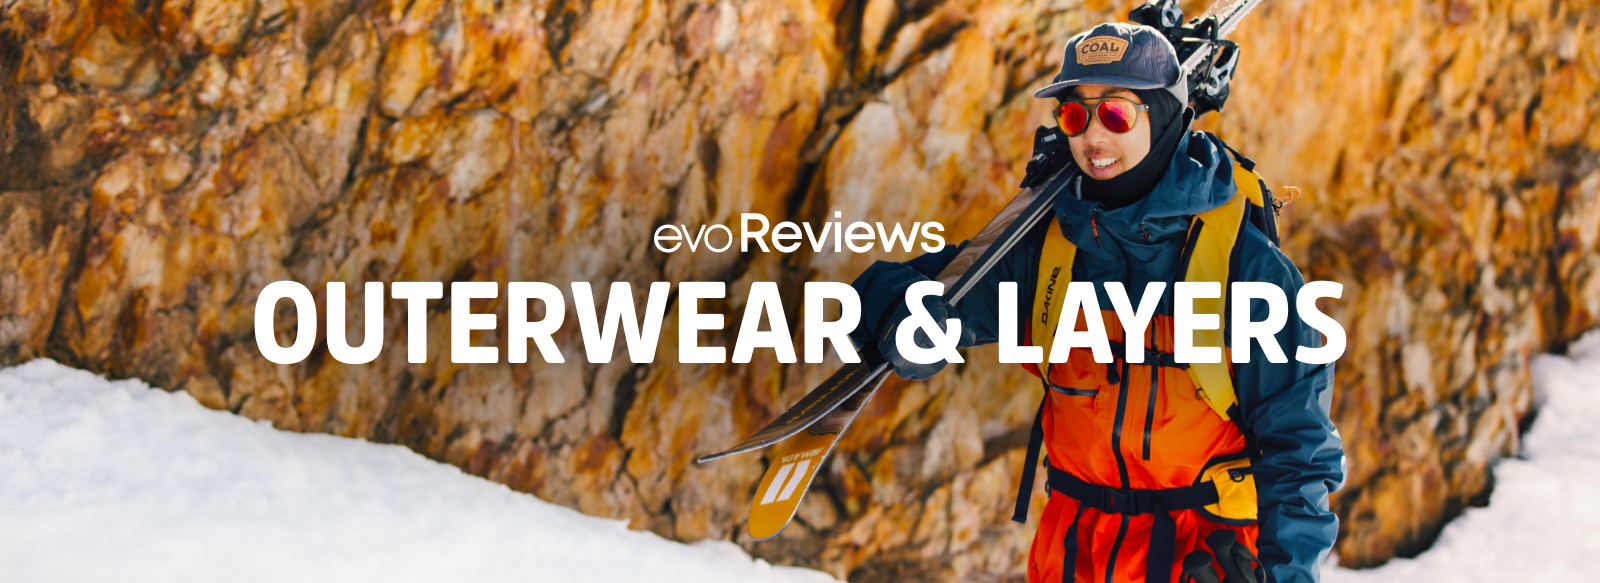 evoReviews Outerwear & layers reviews